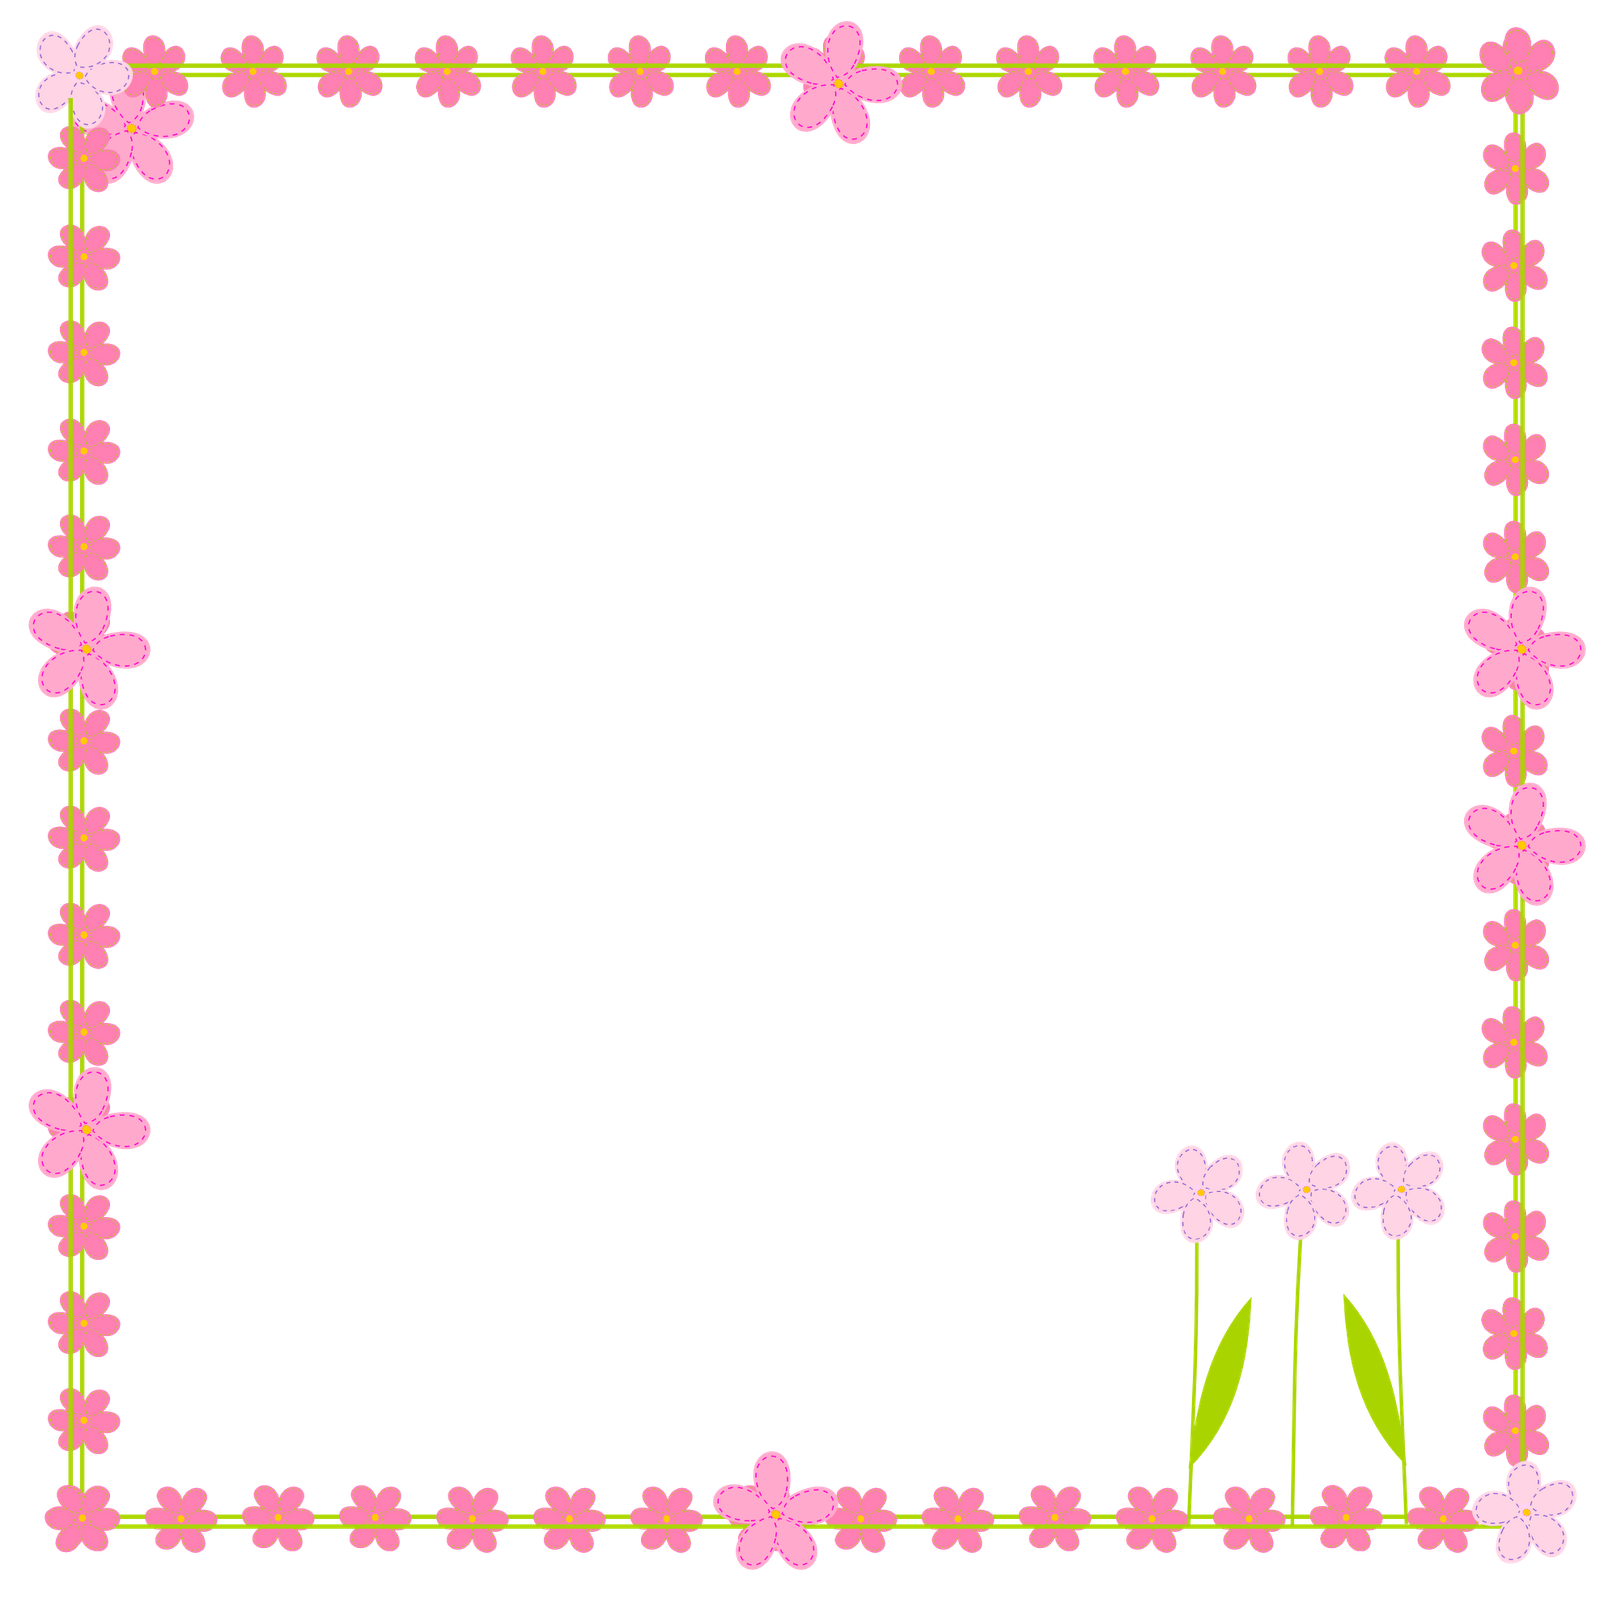 Free birthday crown clipart banner library stock Pink Flower Border Clip Art | Clipart Panda - Free Clipart Images banner library stock